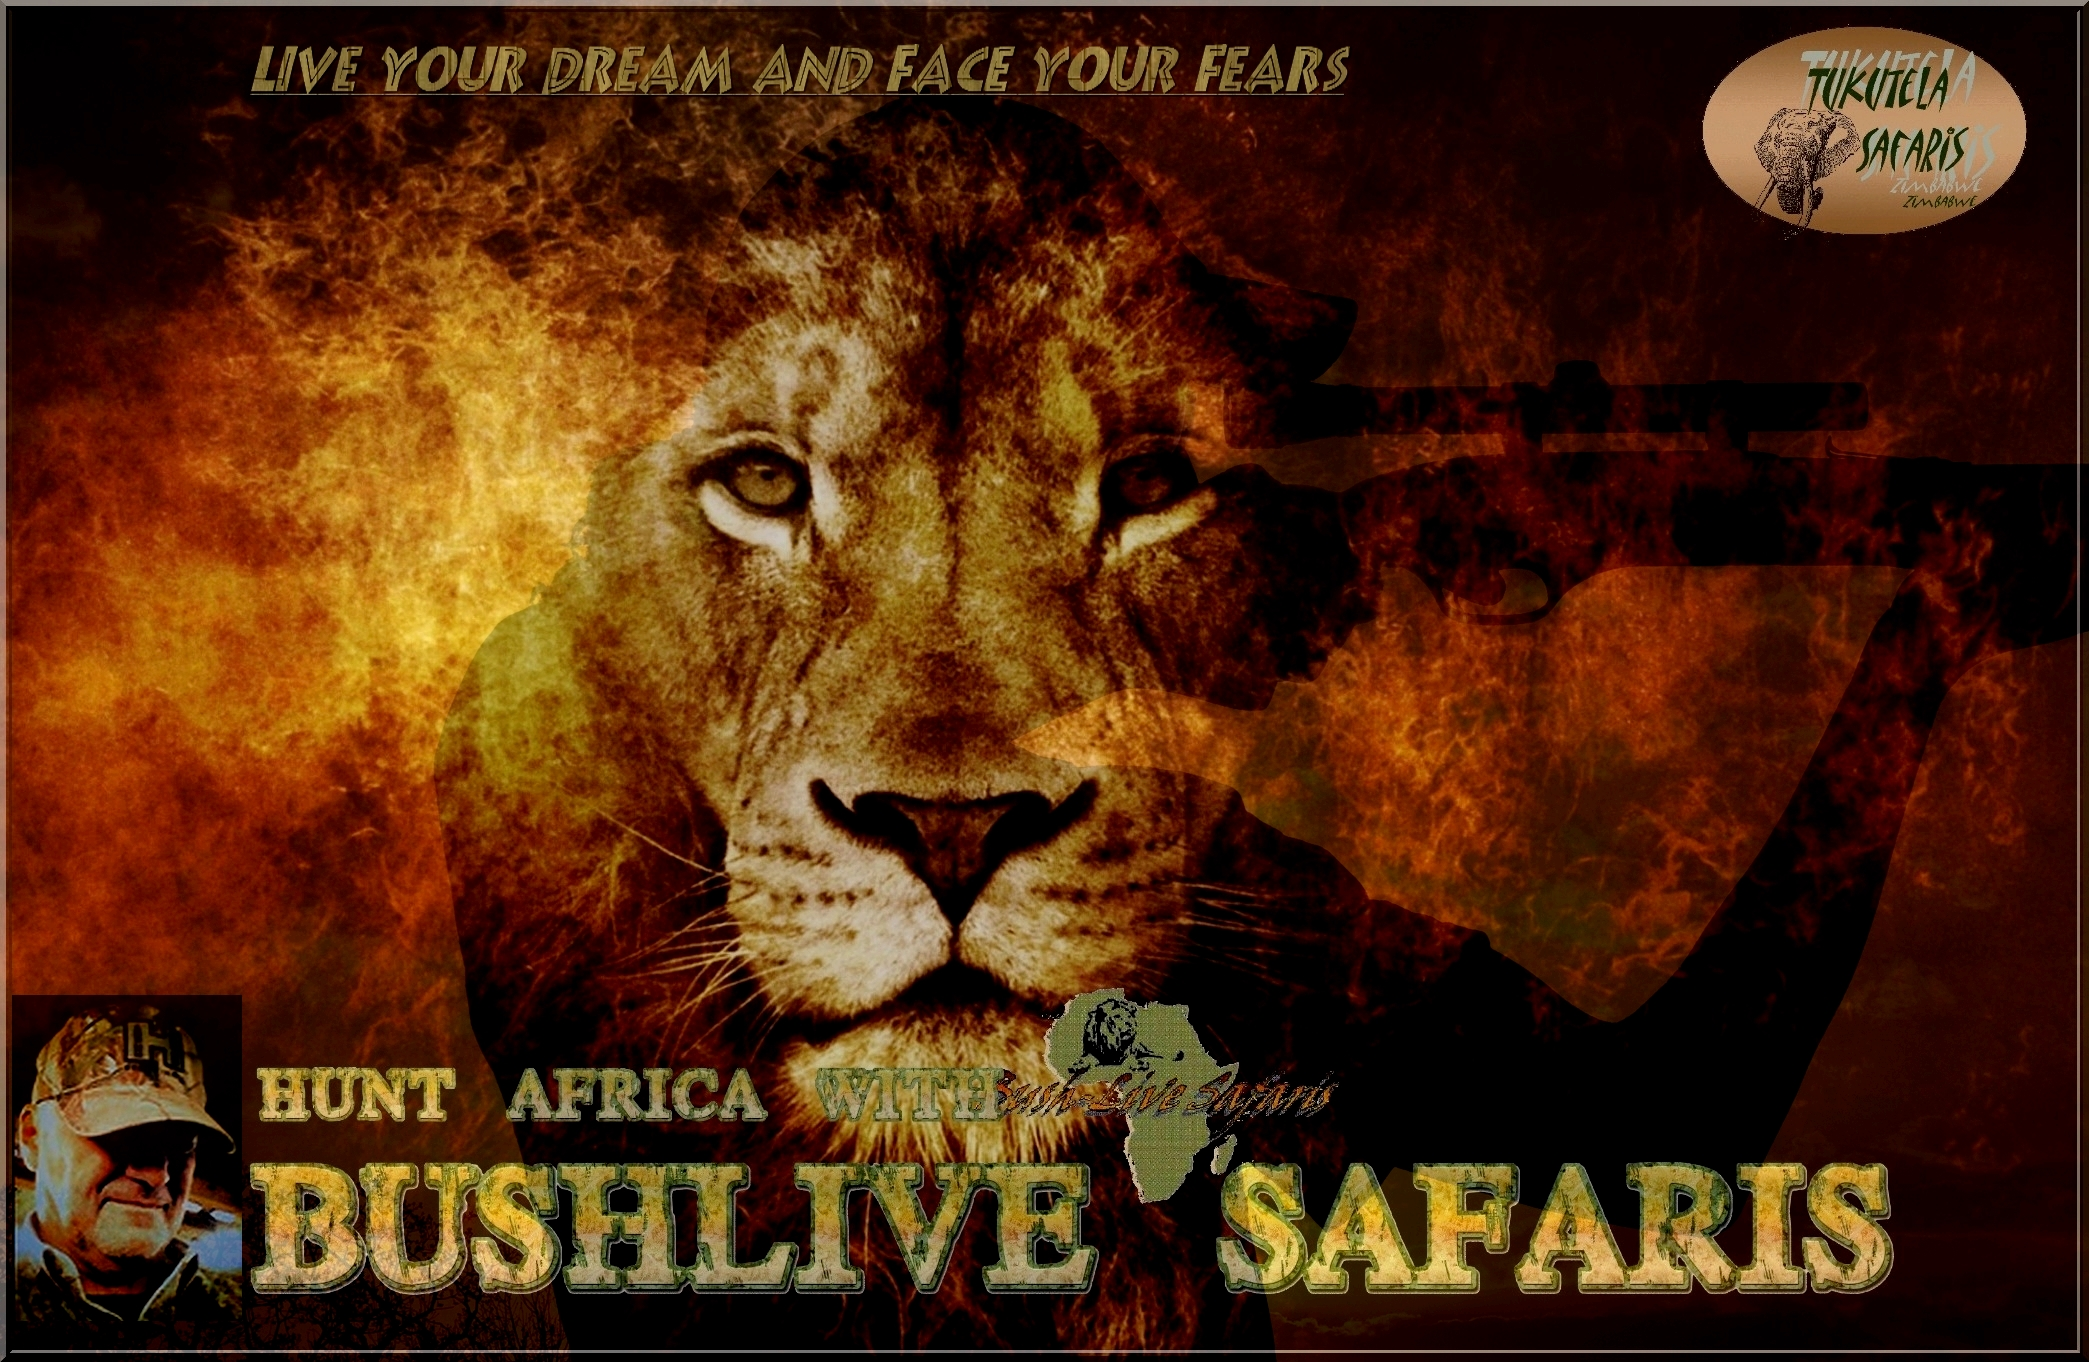 Bushlive Safaris